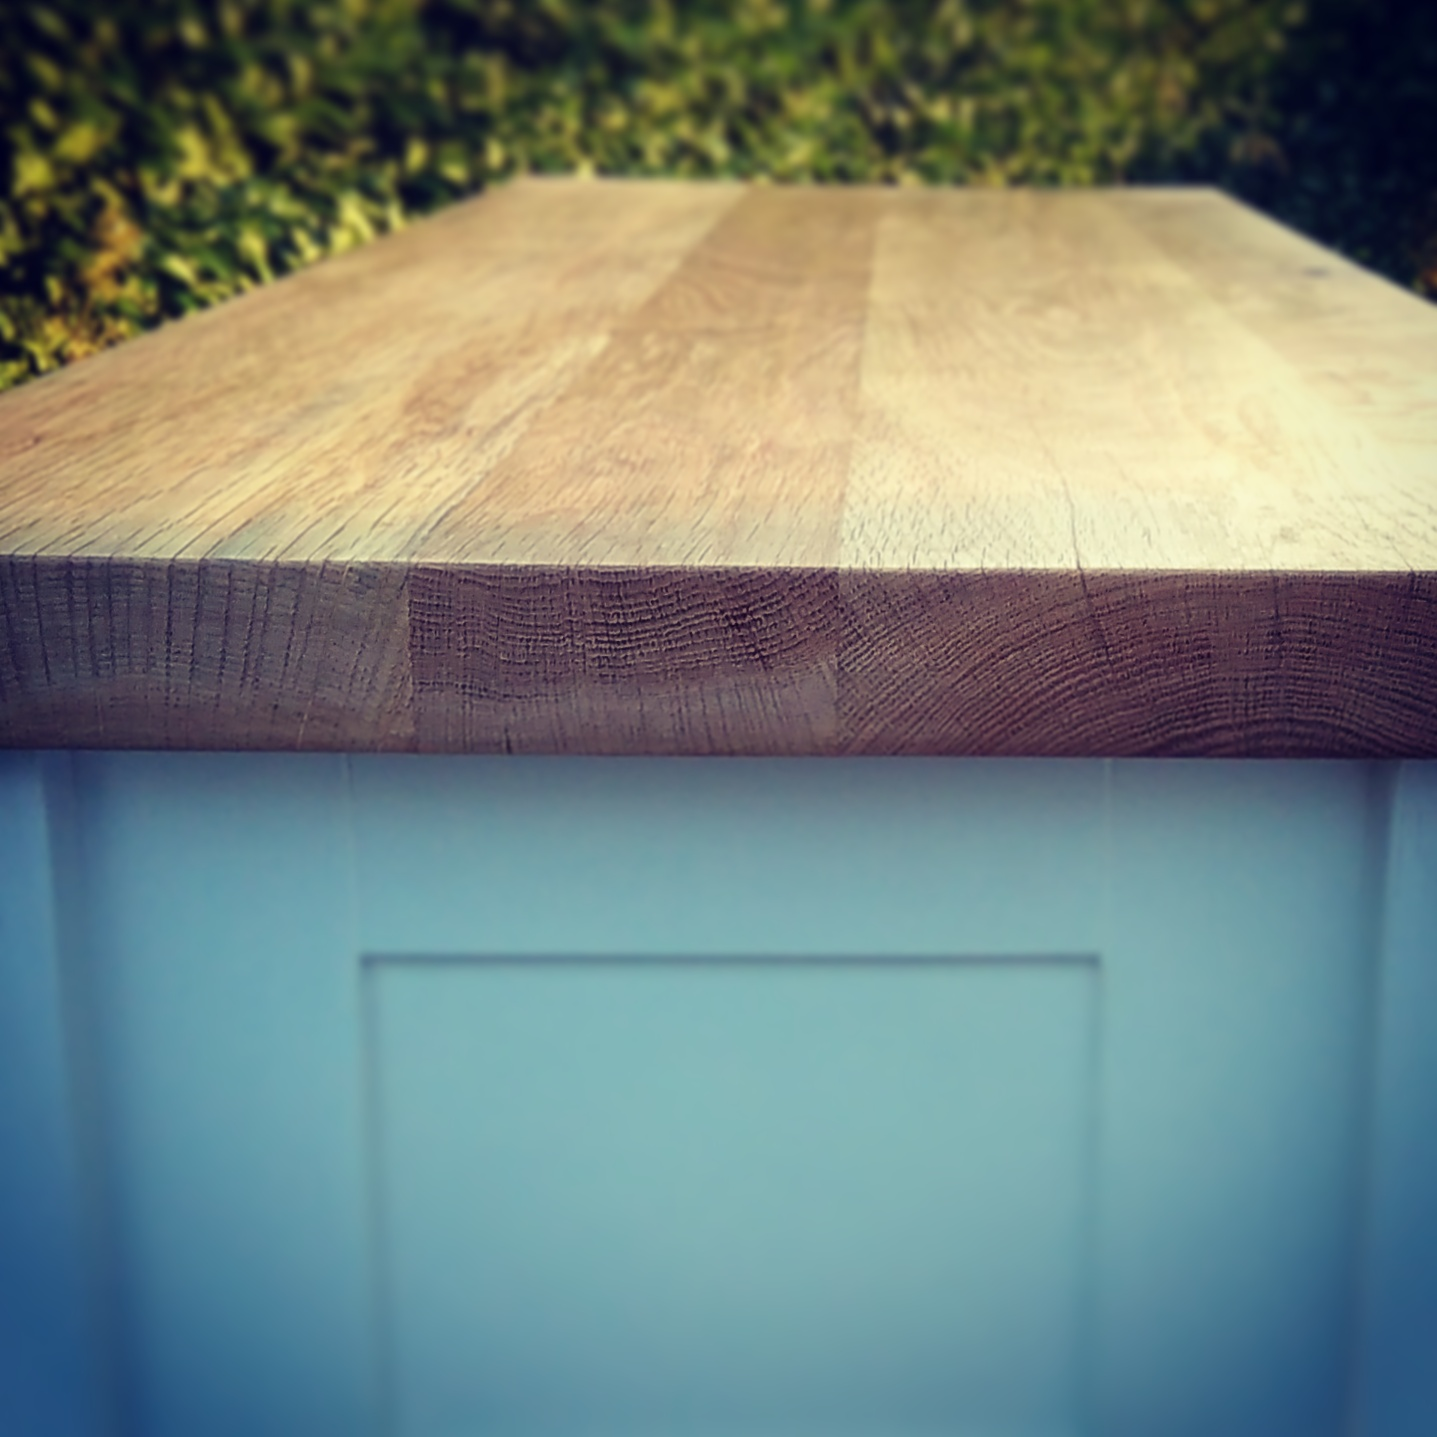 One of our wide plank reclaimed oak worktops, being used here as part of a freestanding kitchen for the scullery table.